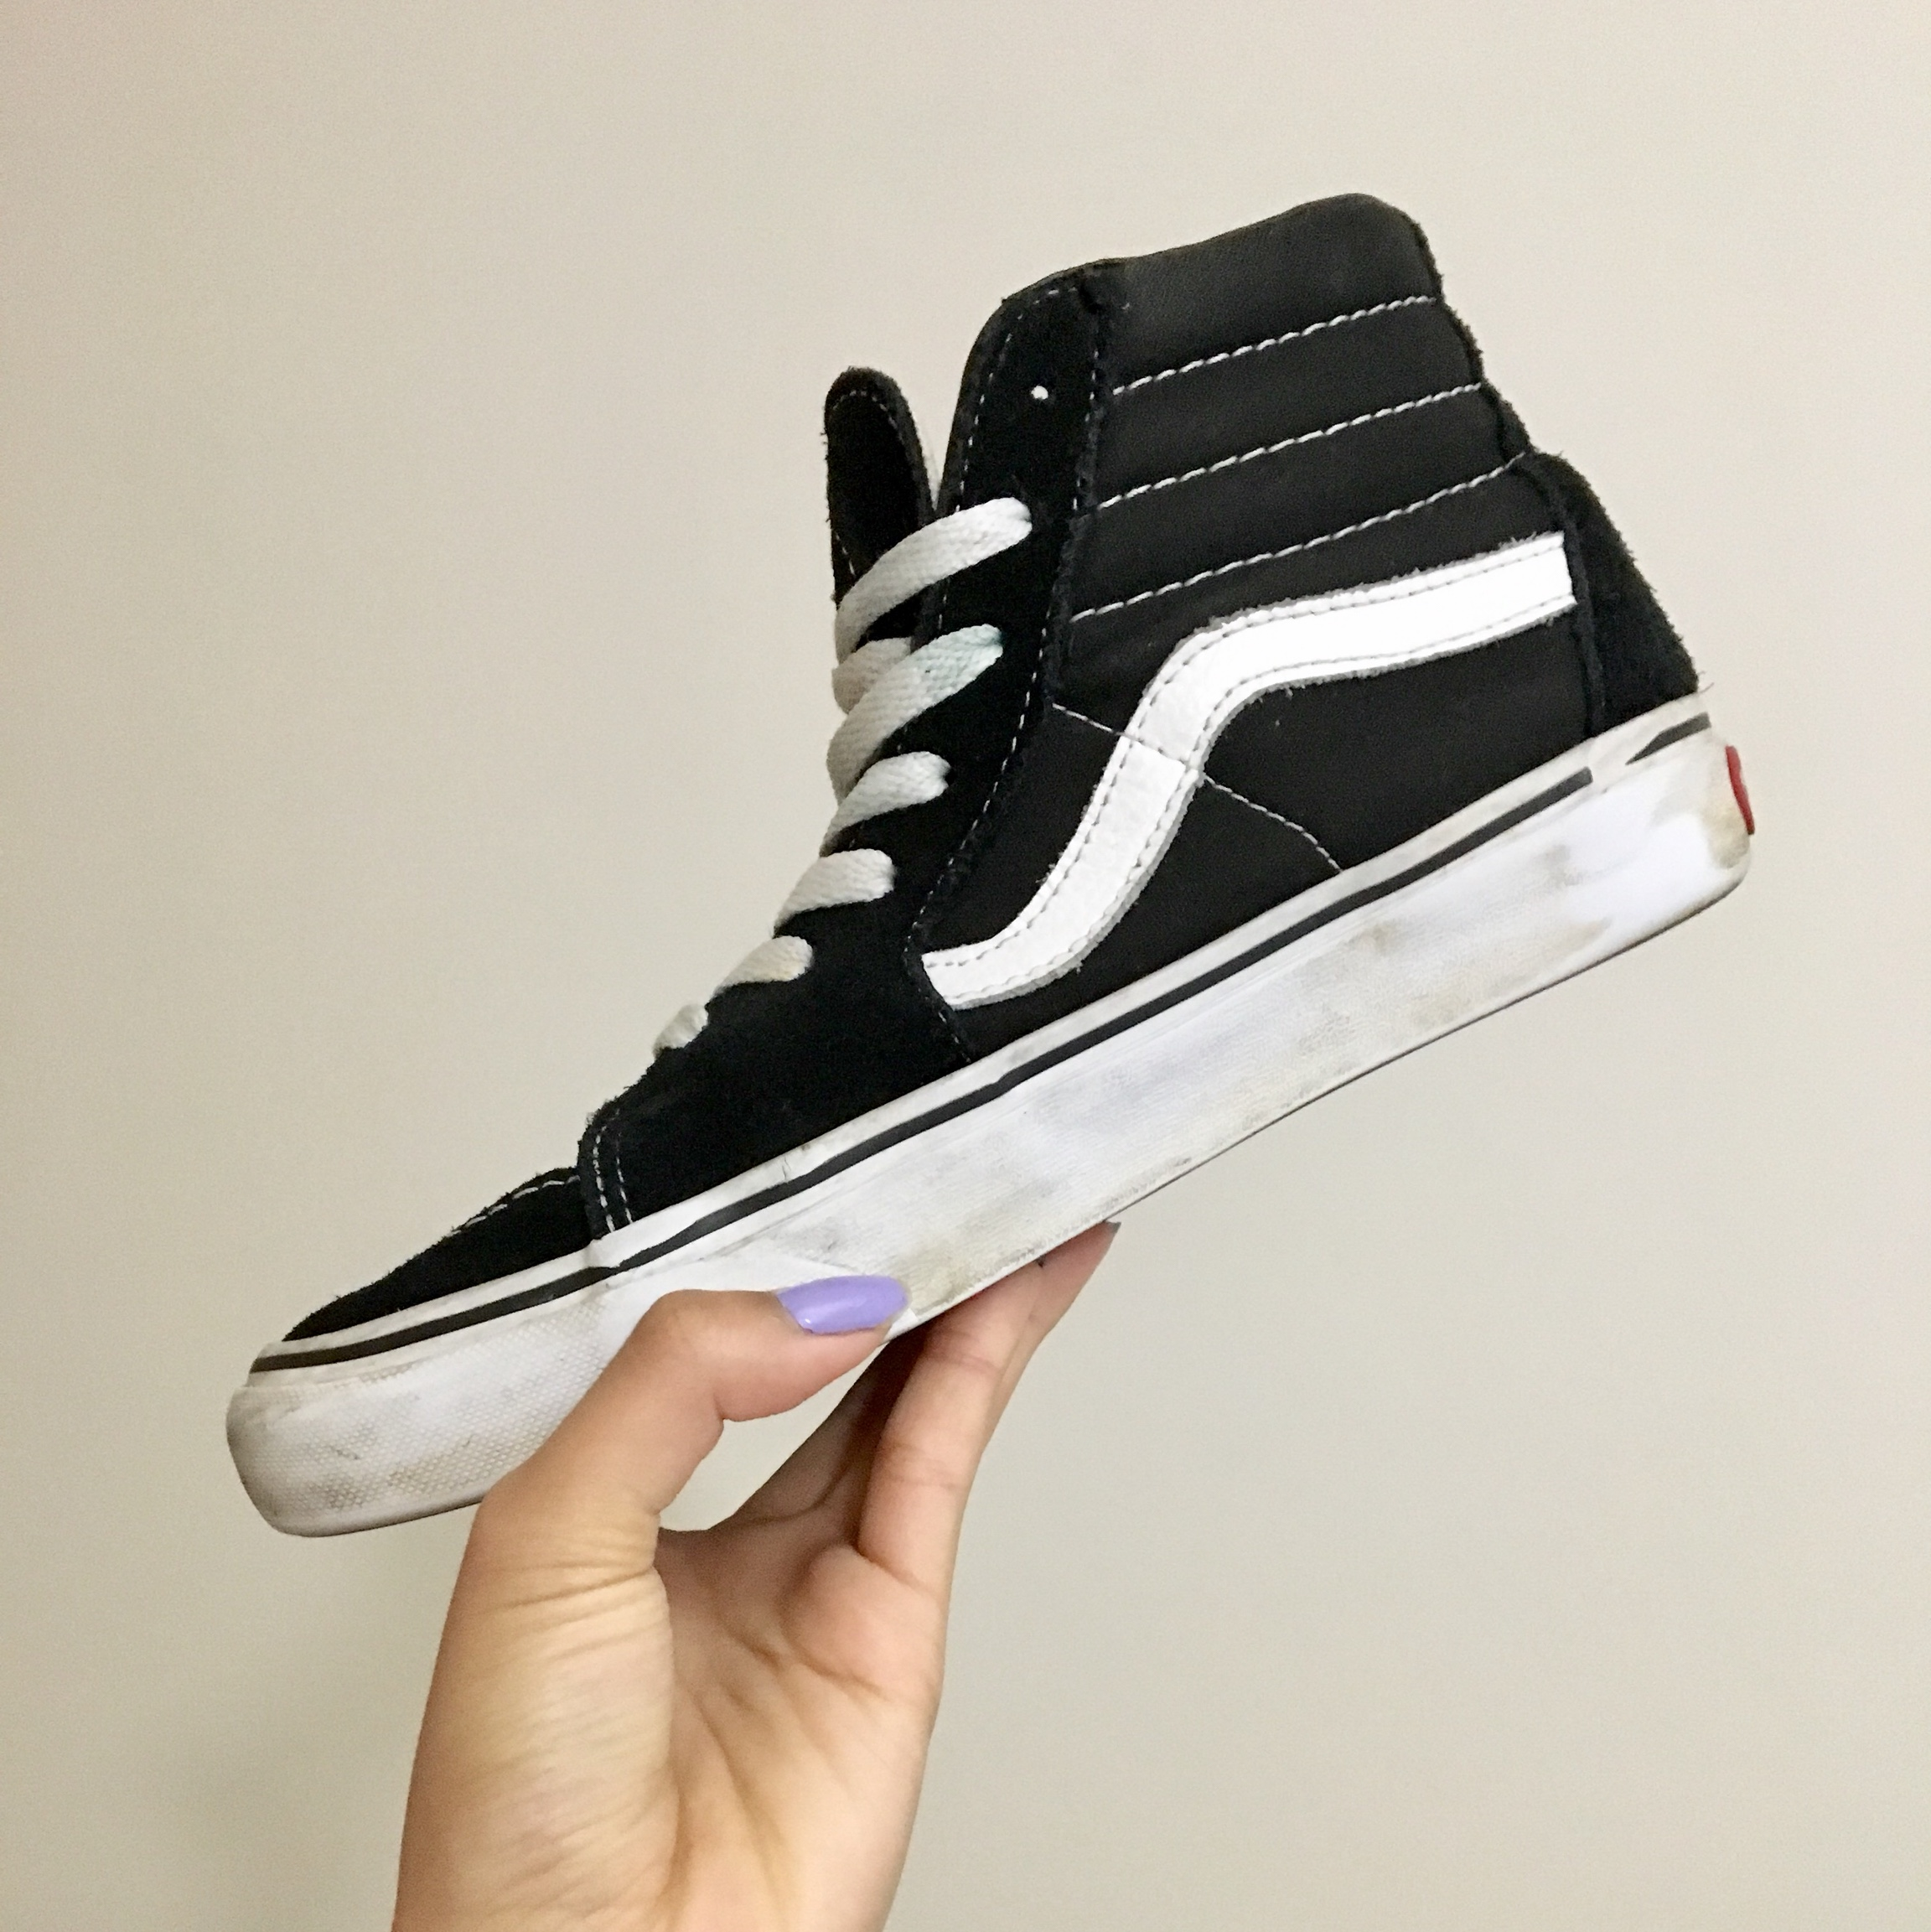 Old skool high top Vans. I use to wear these a lot, Depop